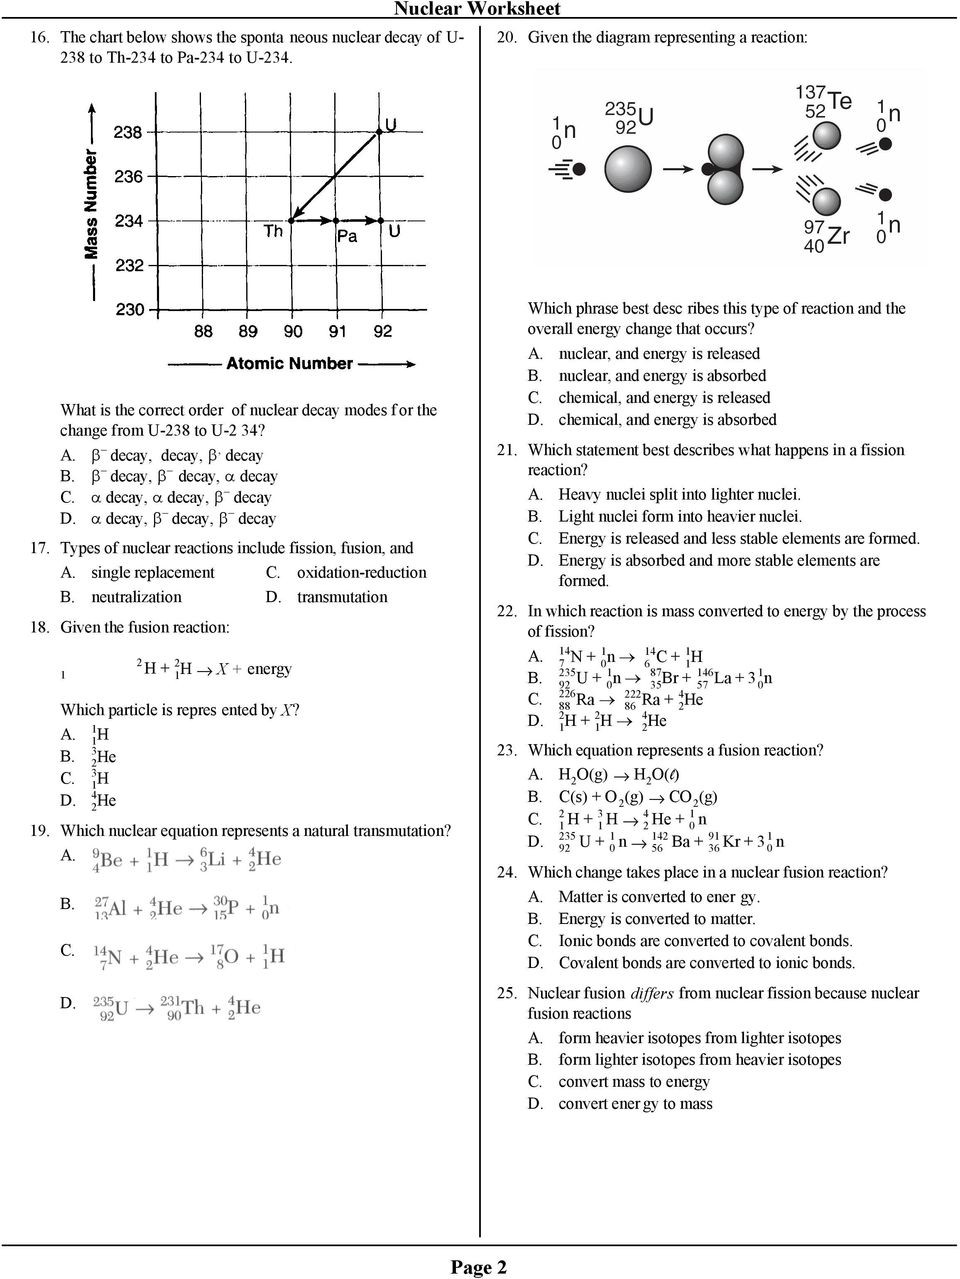 Nuclear Decay Worksheet Answers Chemistry